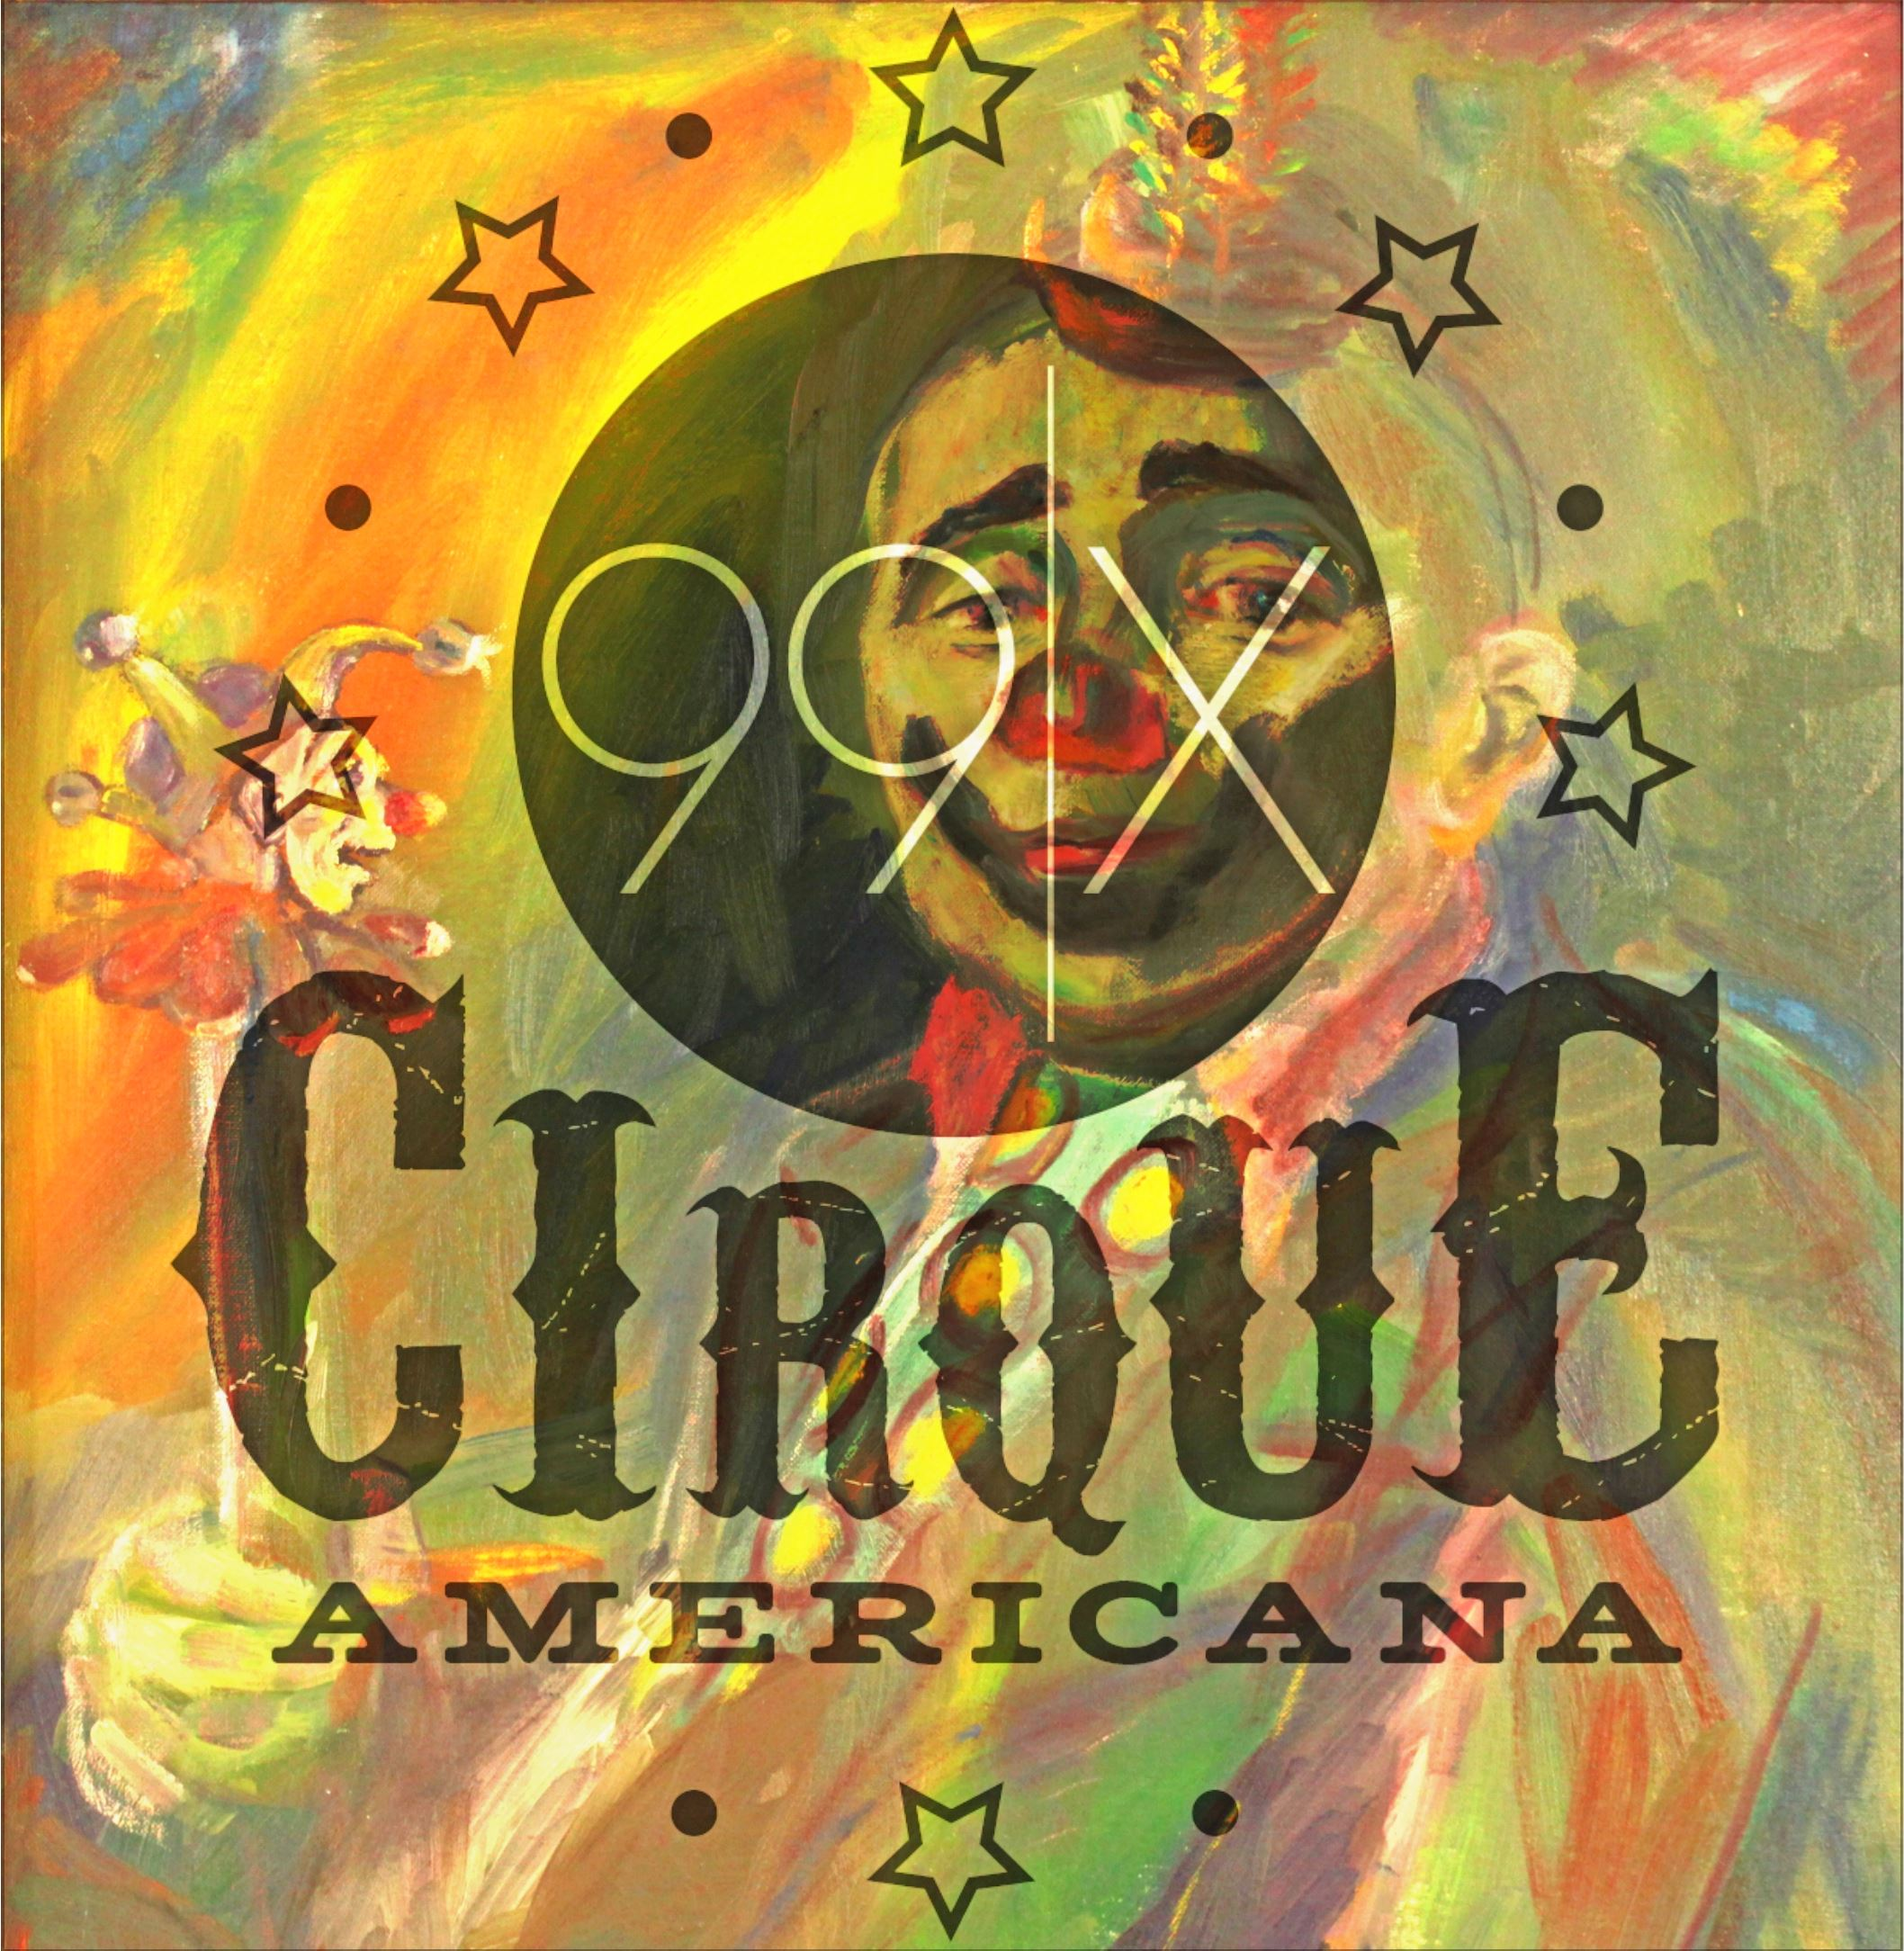 99x Cirque Americana logo with Messick painting